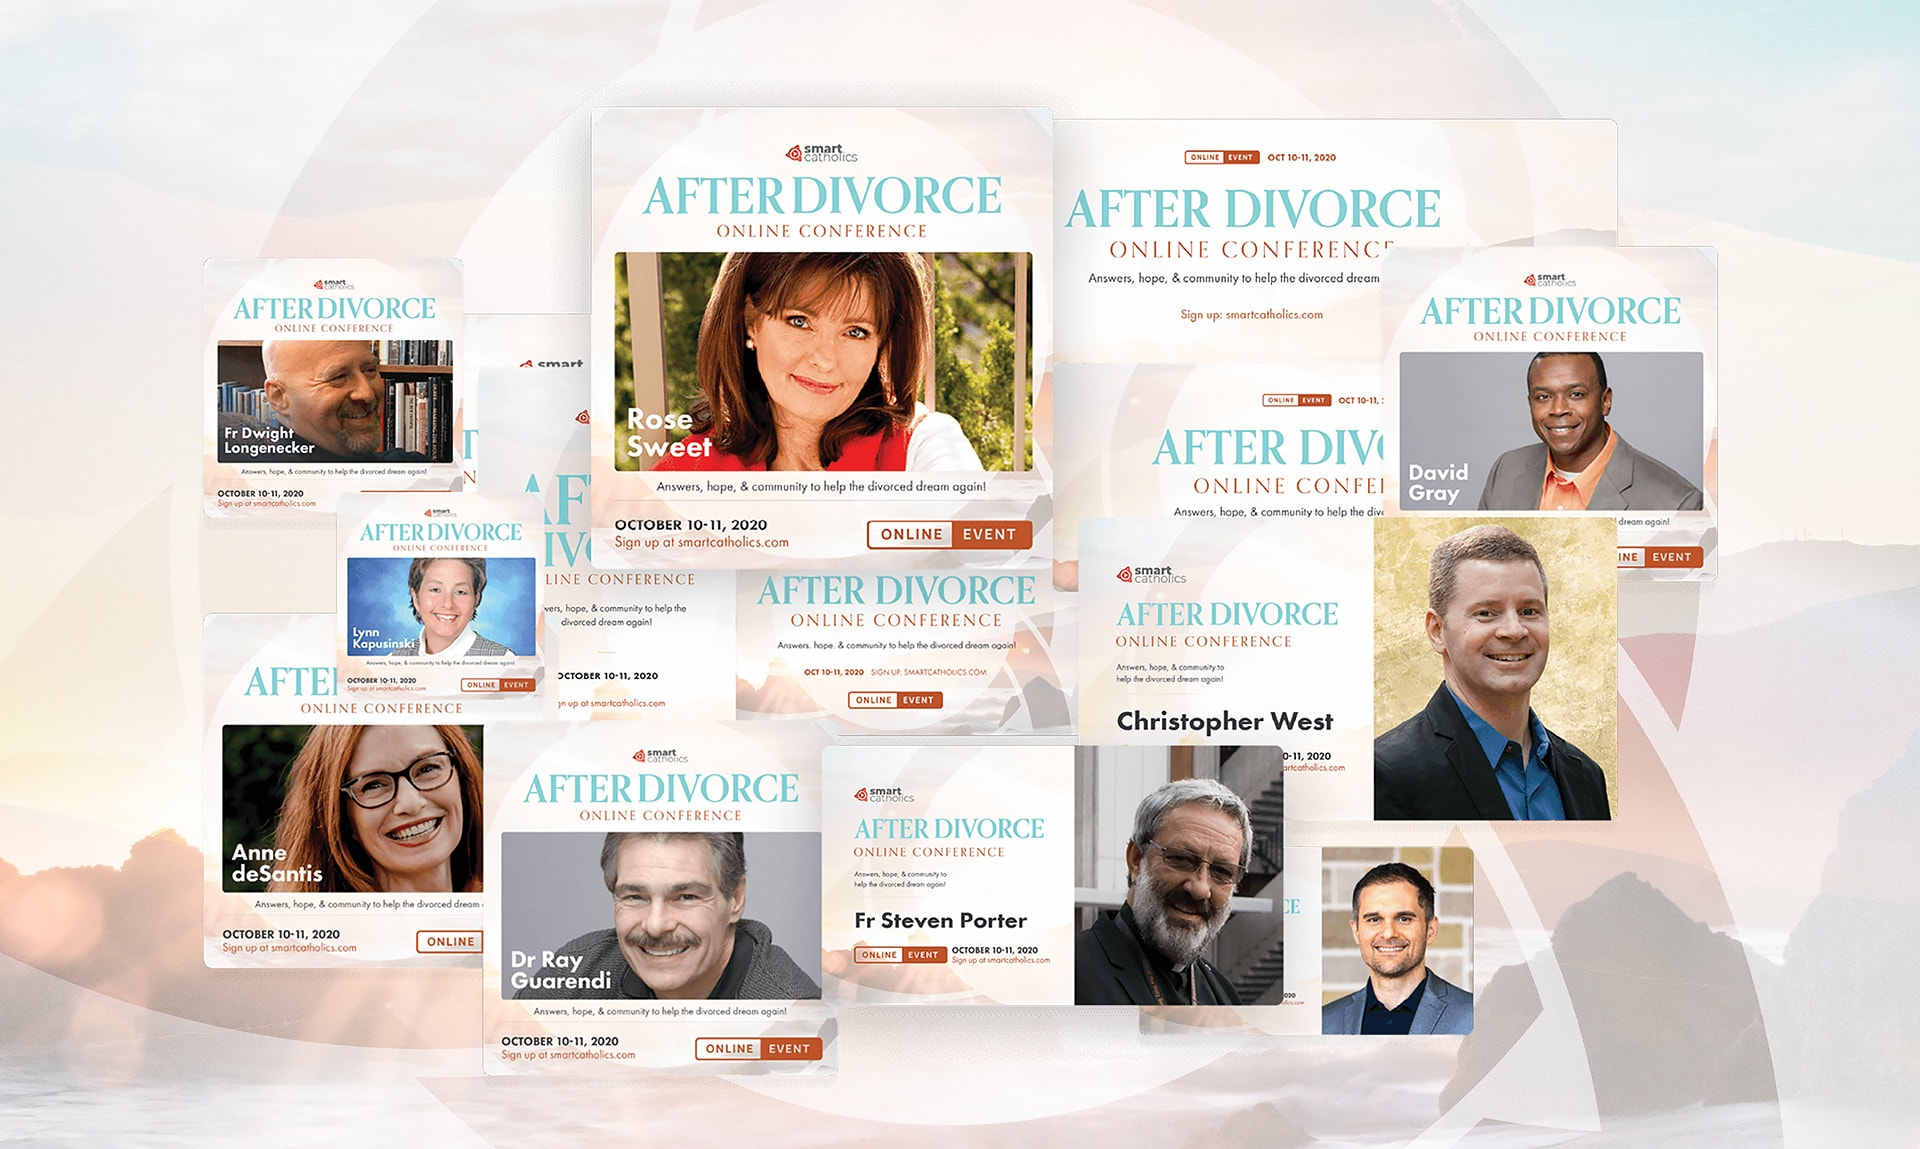 Meet the Speakers from the 'After Divorce' Online Conference